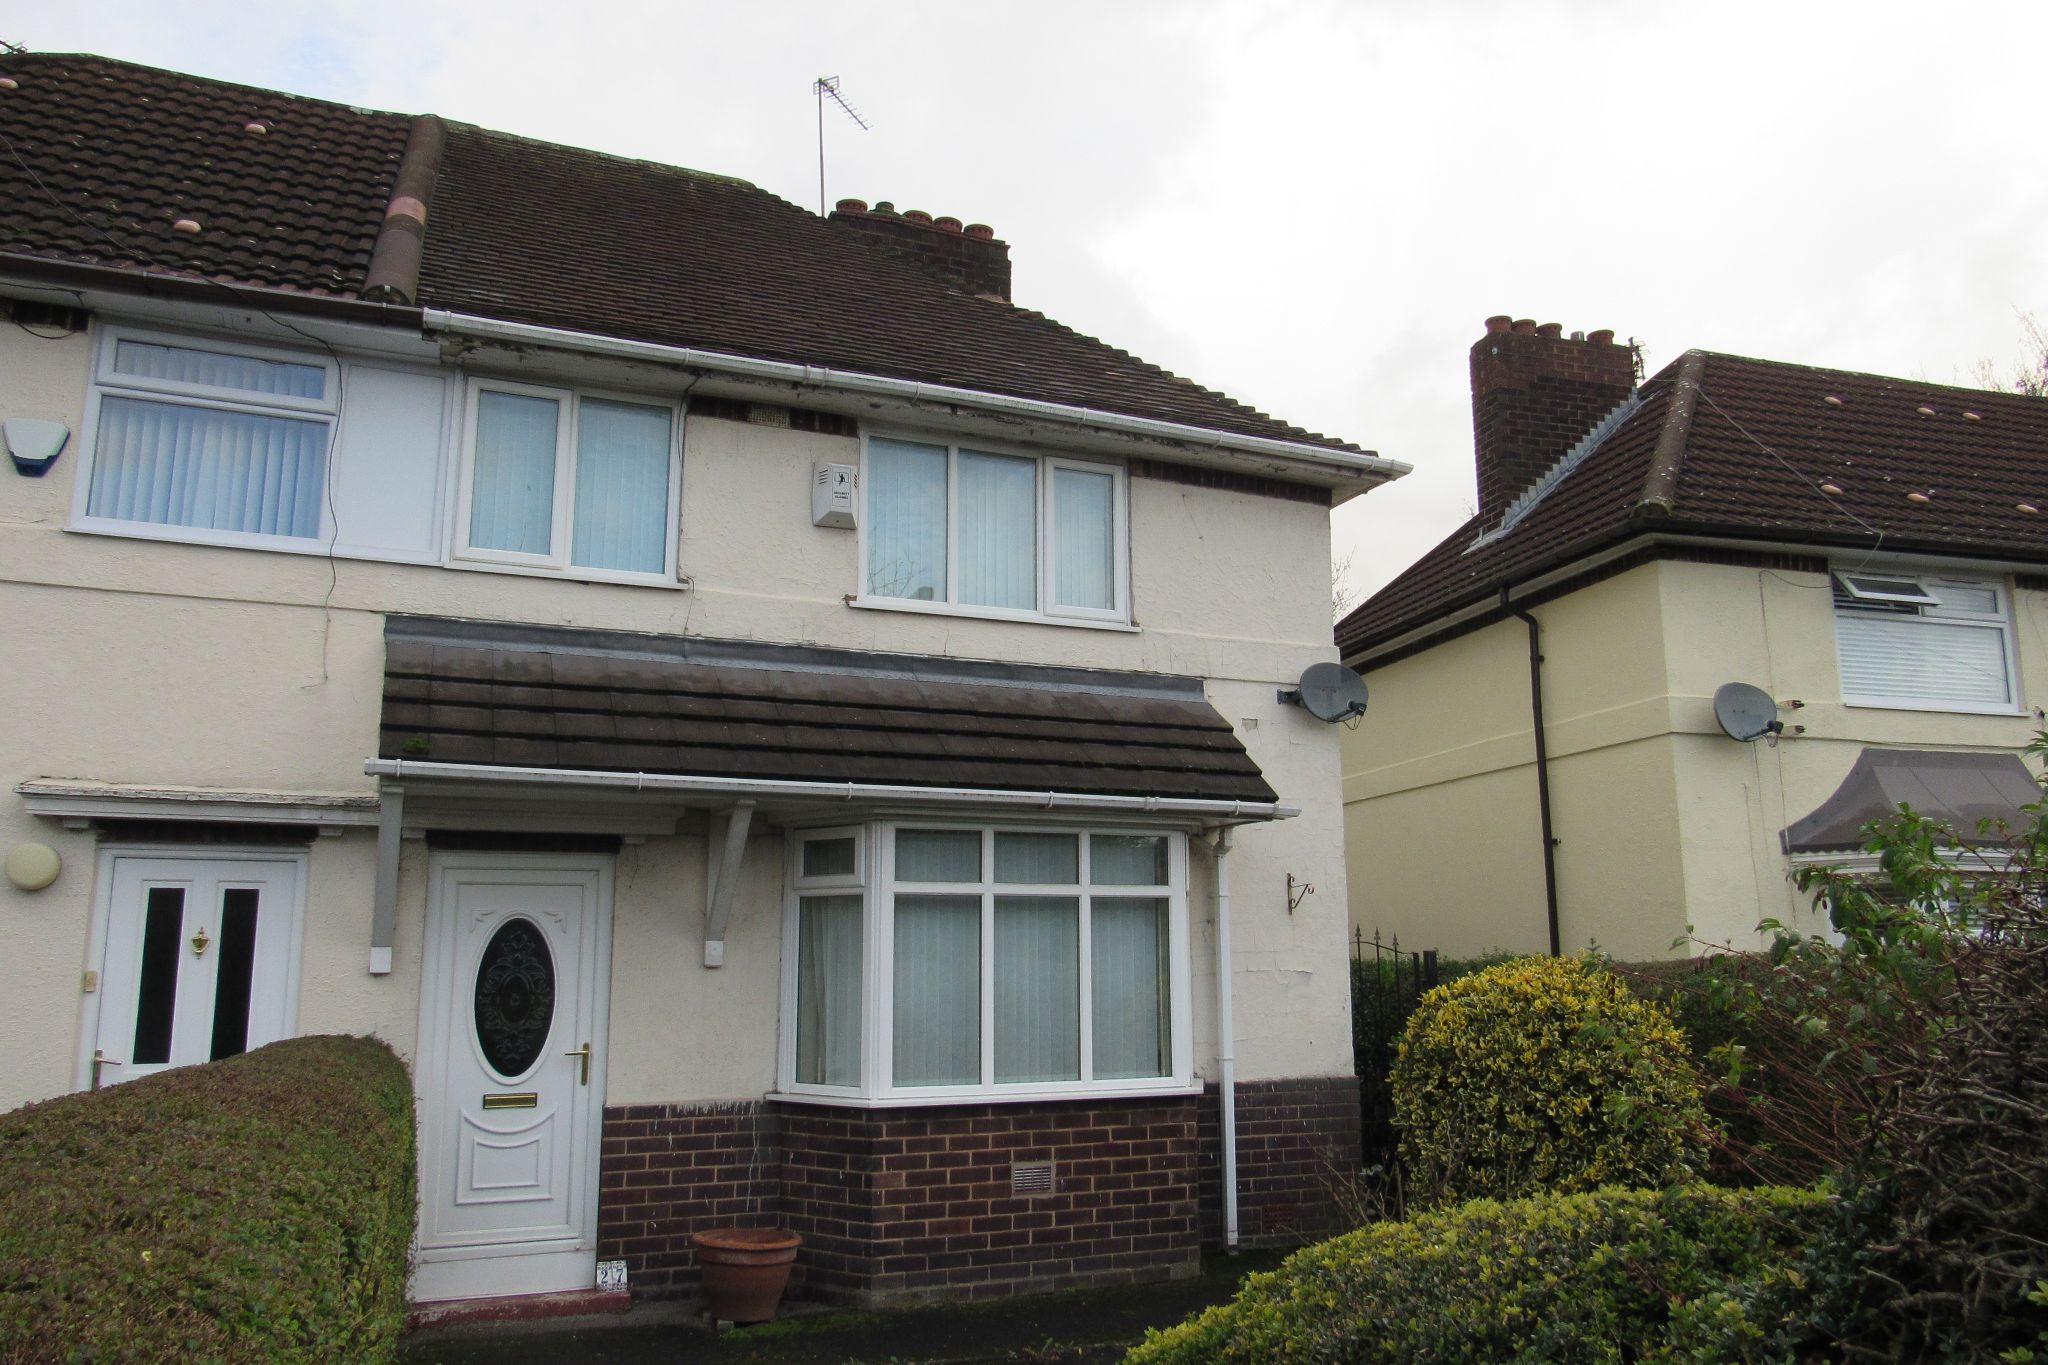 3 bedroom semi-detached house SSTC in Manchester - Photograph 9.